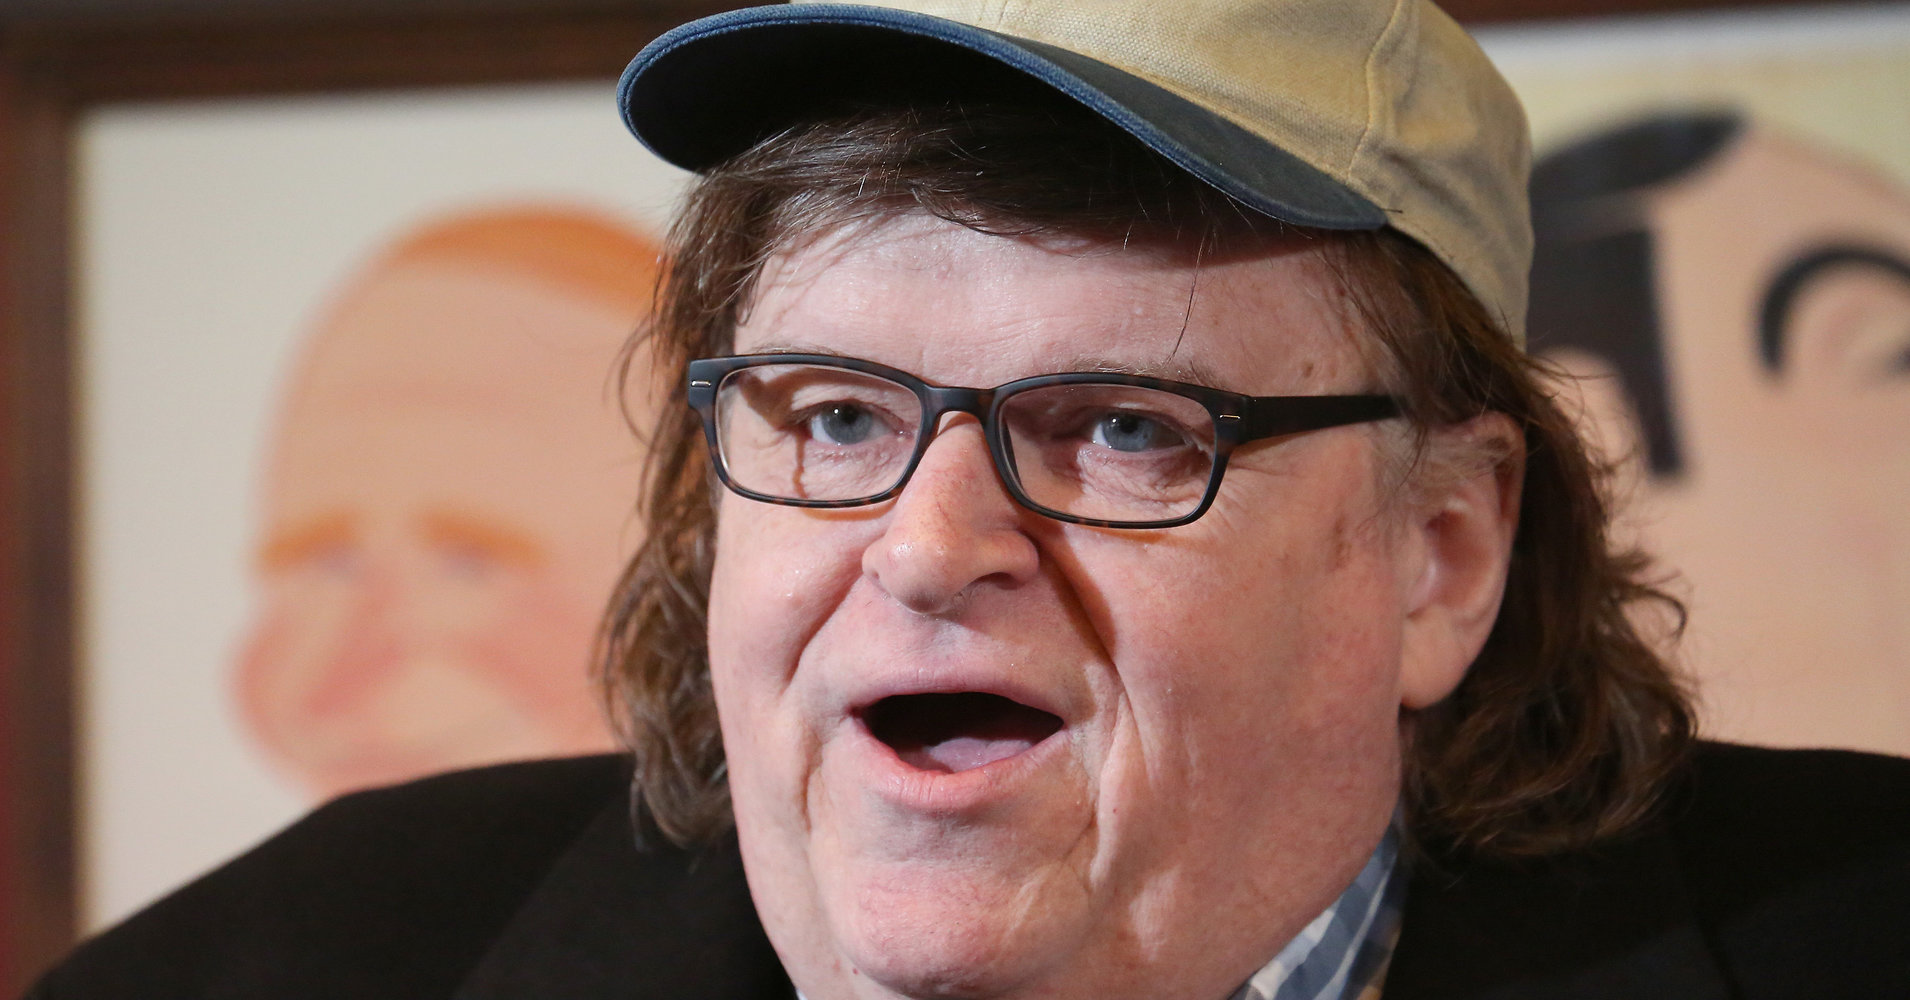 Michael Moore shares ridiculous big plan to stop Trump's SCOTUS pick